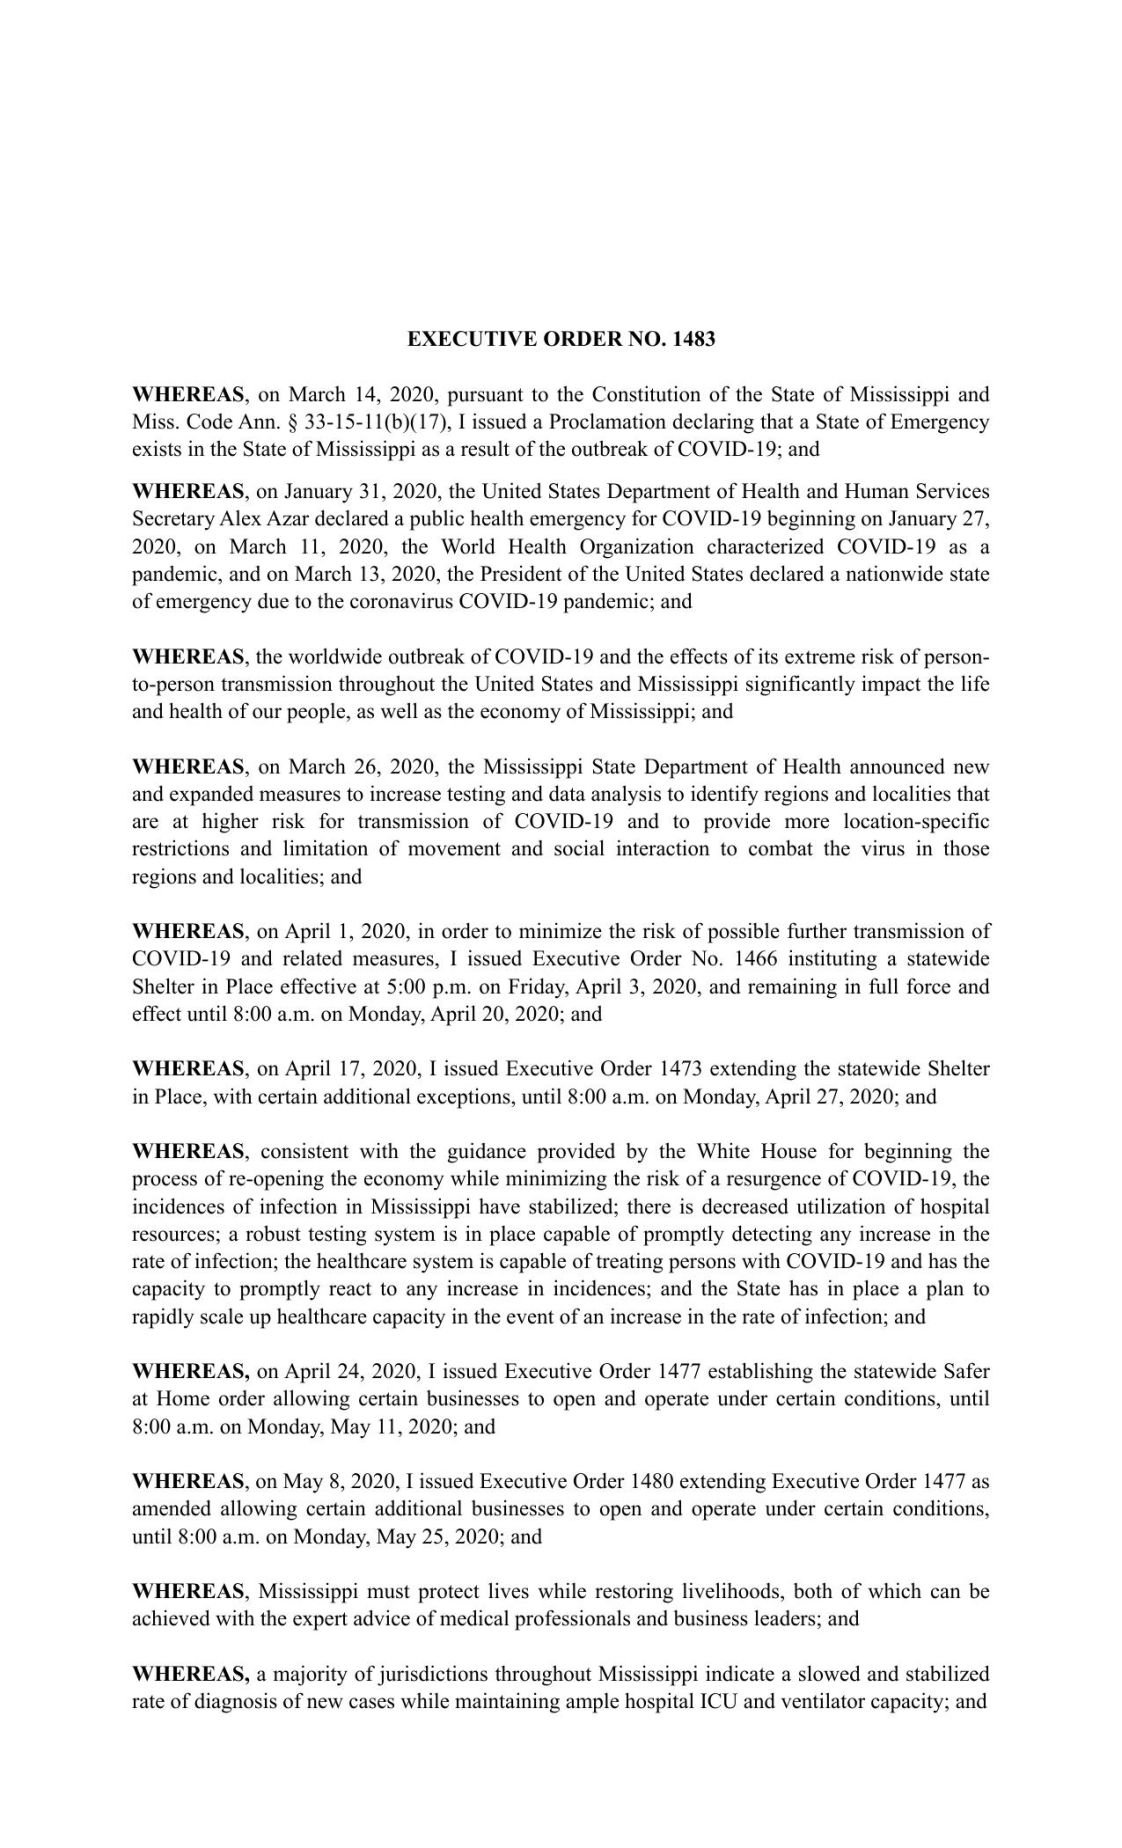 Gov. Tate Reeves' Executive Order issued May 12